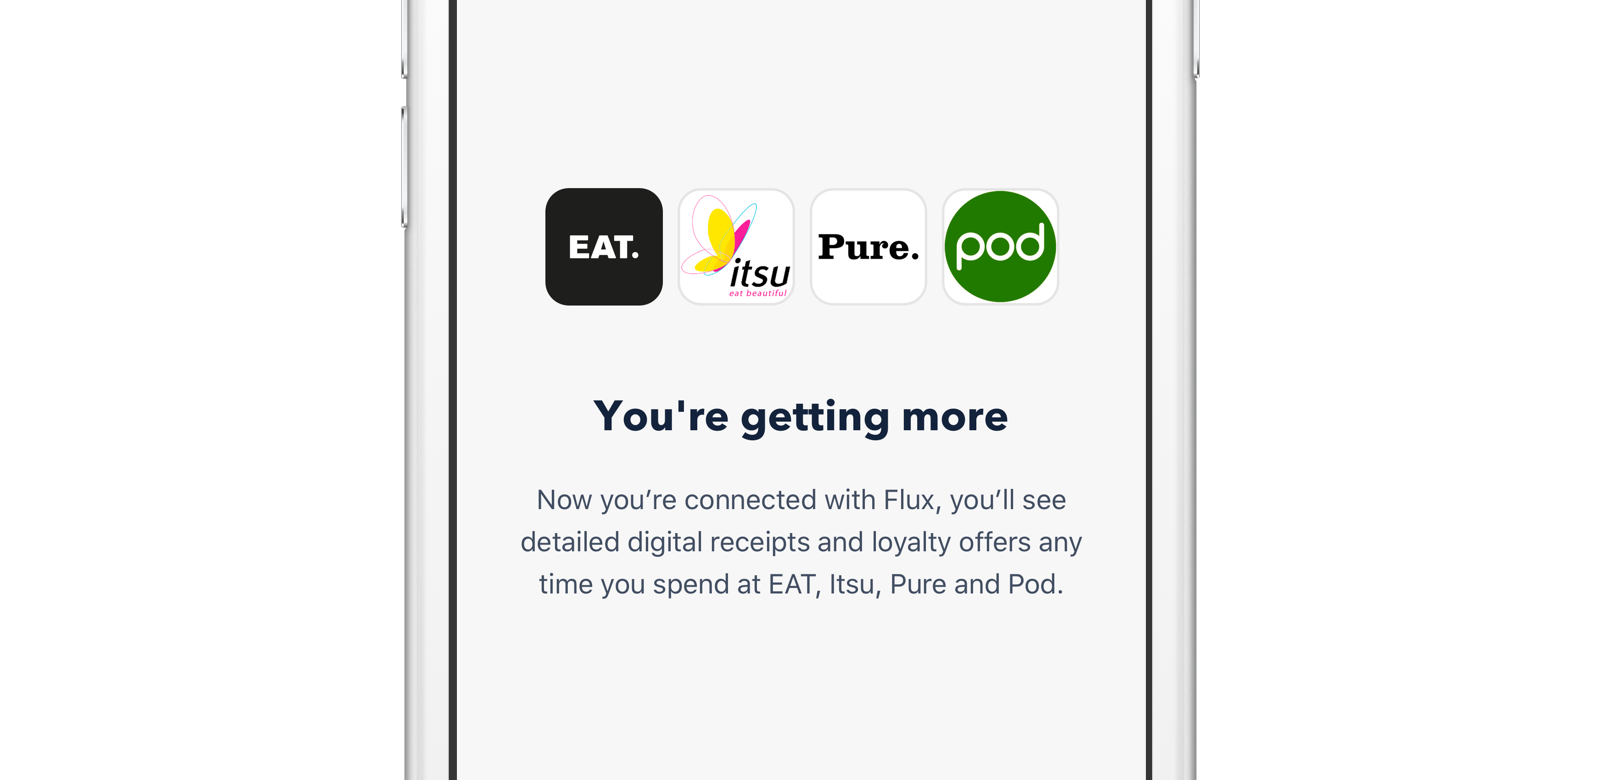 A selection of Flux retailers available through Monzo.